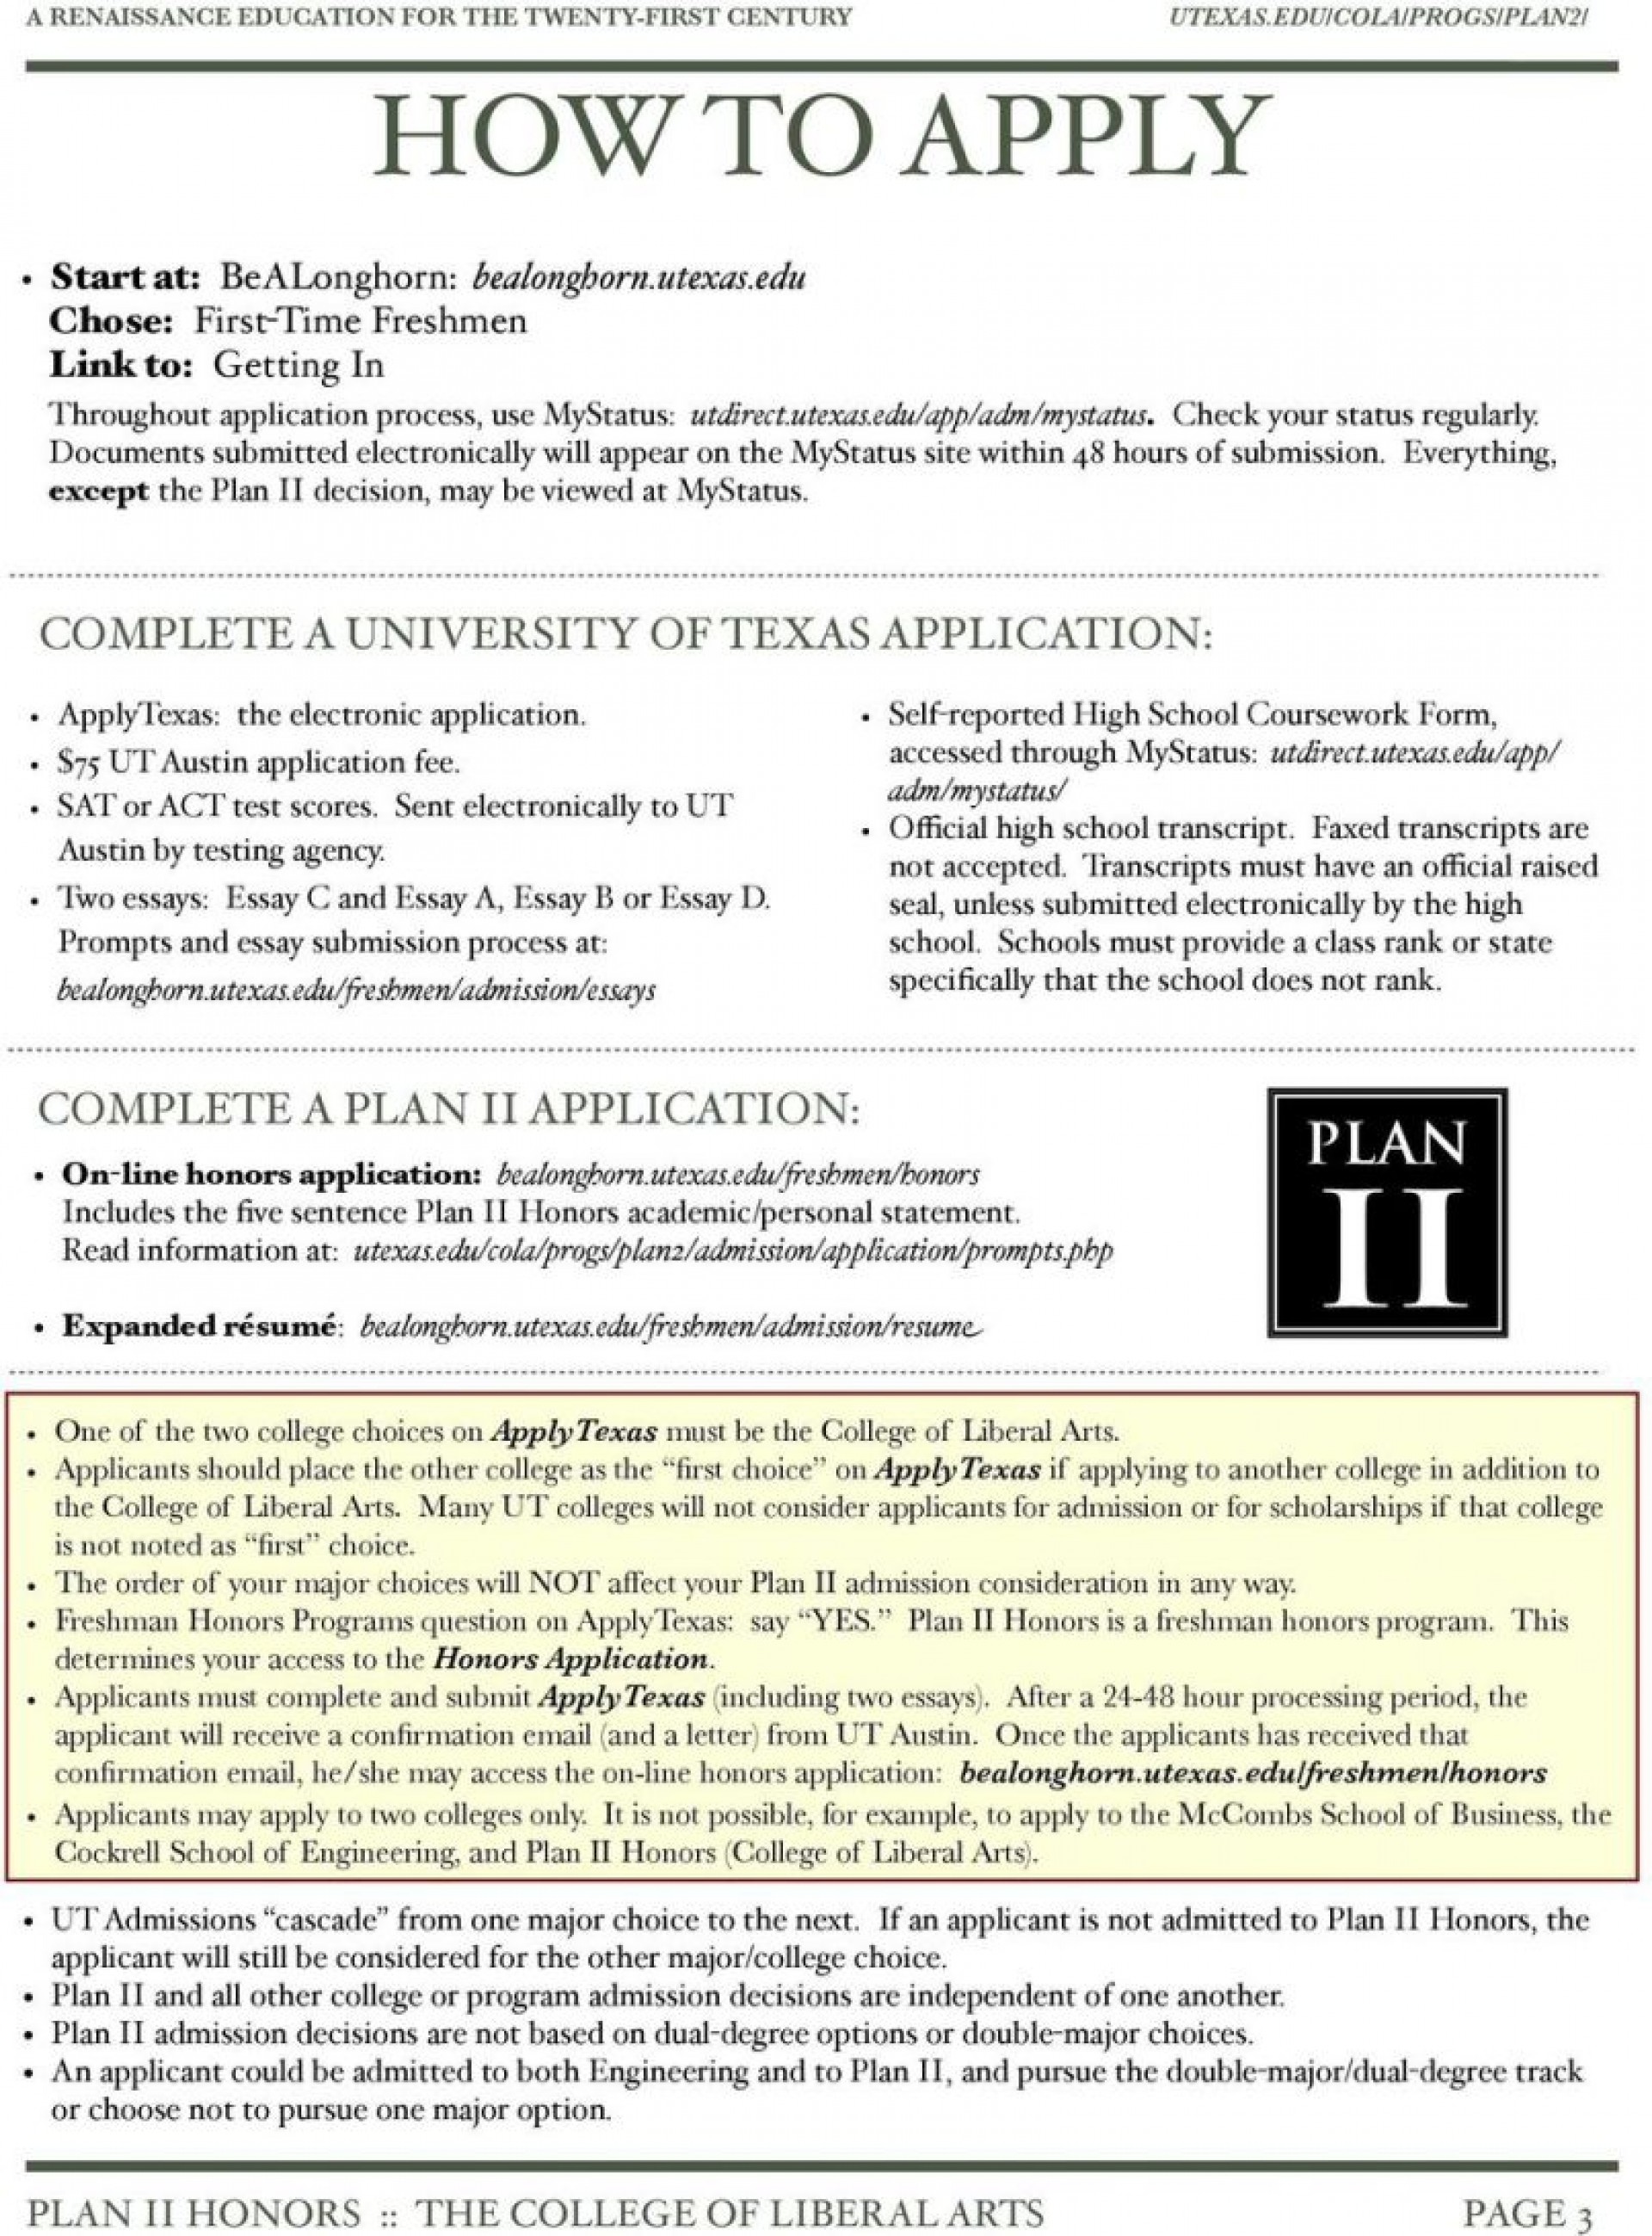 005 Essay Example Applytexas Prompts Poemdoc Or Apply Texas Topic Examples P Striking C 2016 Prompt 1920